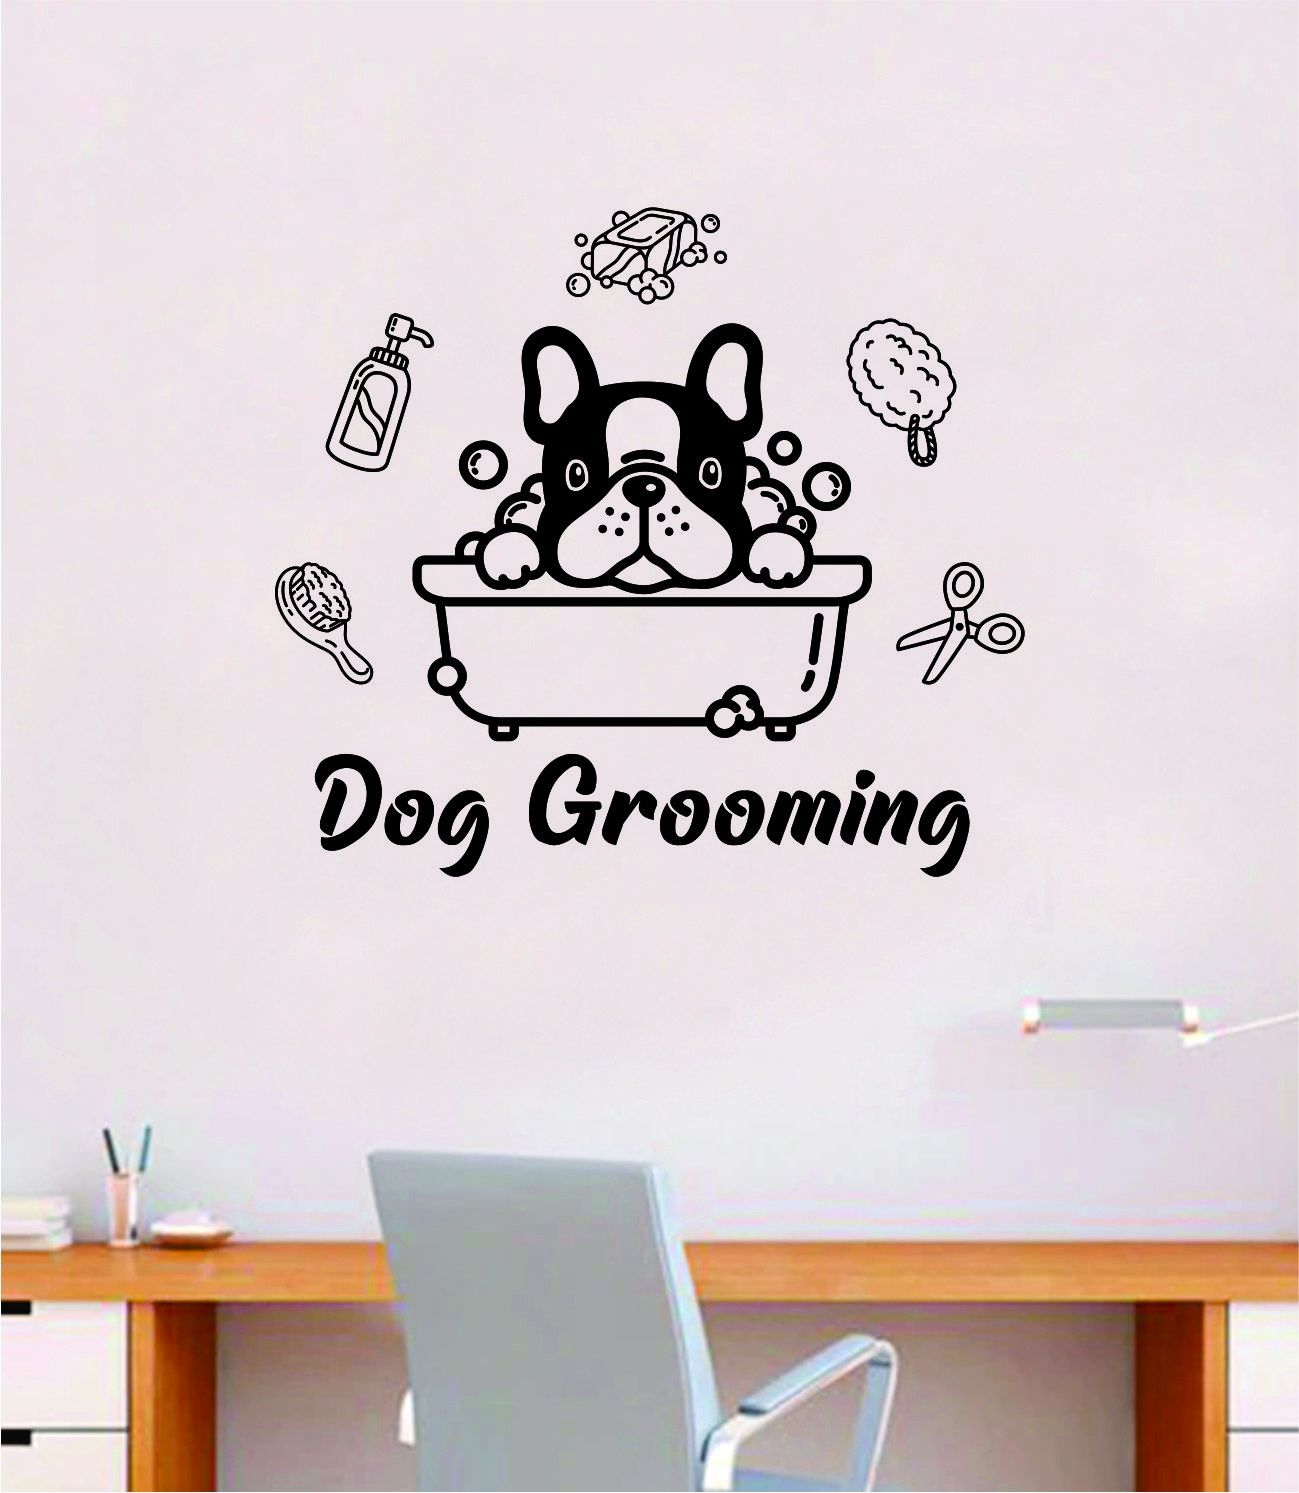 Dog Grooming Quote Wall Decal Sticker Bedroom Home Room Art Vinyl Inspirational Decor Cute Animals Puppy Pet Vet Rescue Adopt Foster - brown